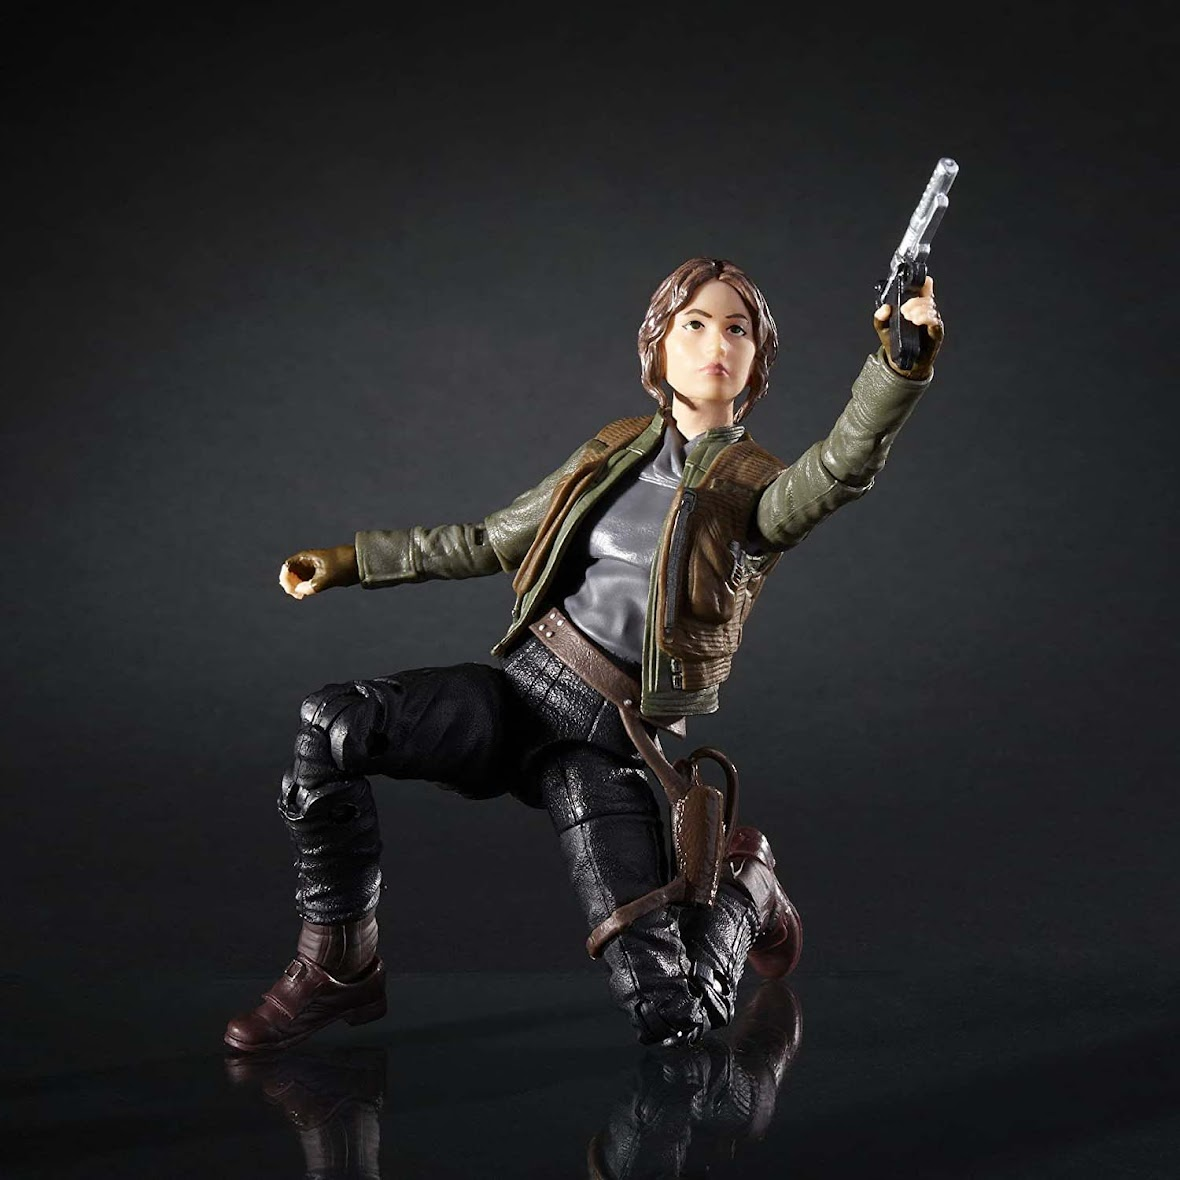 Rogue One Sergeant of the Black Series from Star Wars